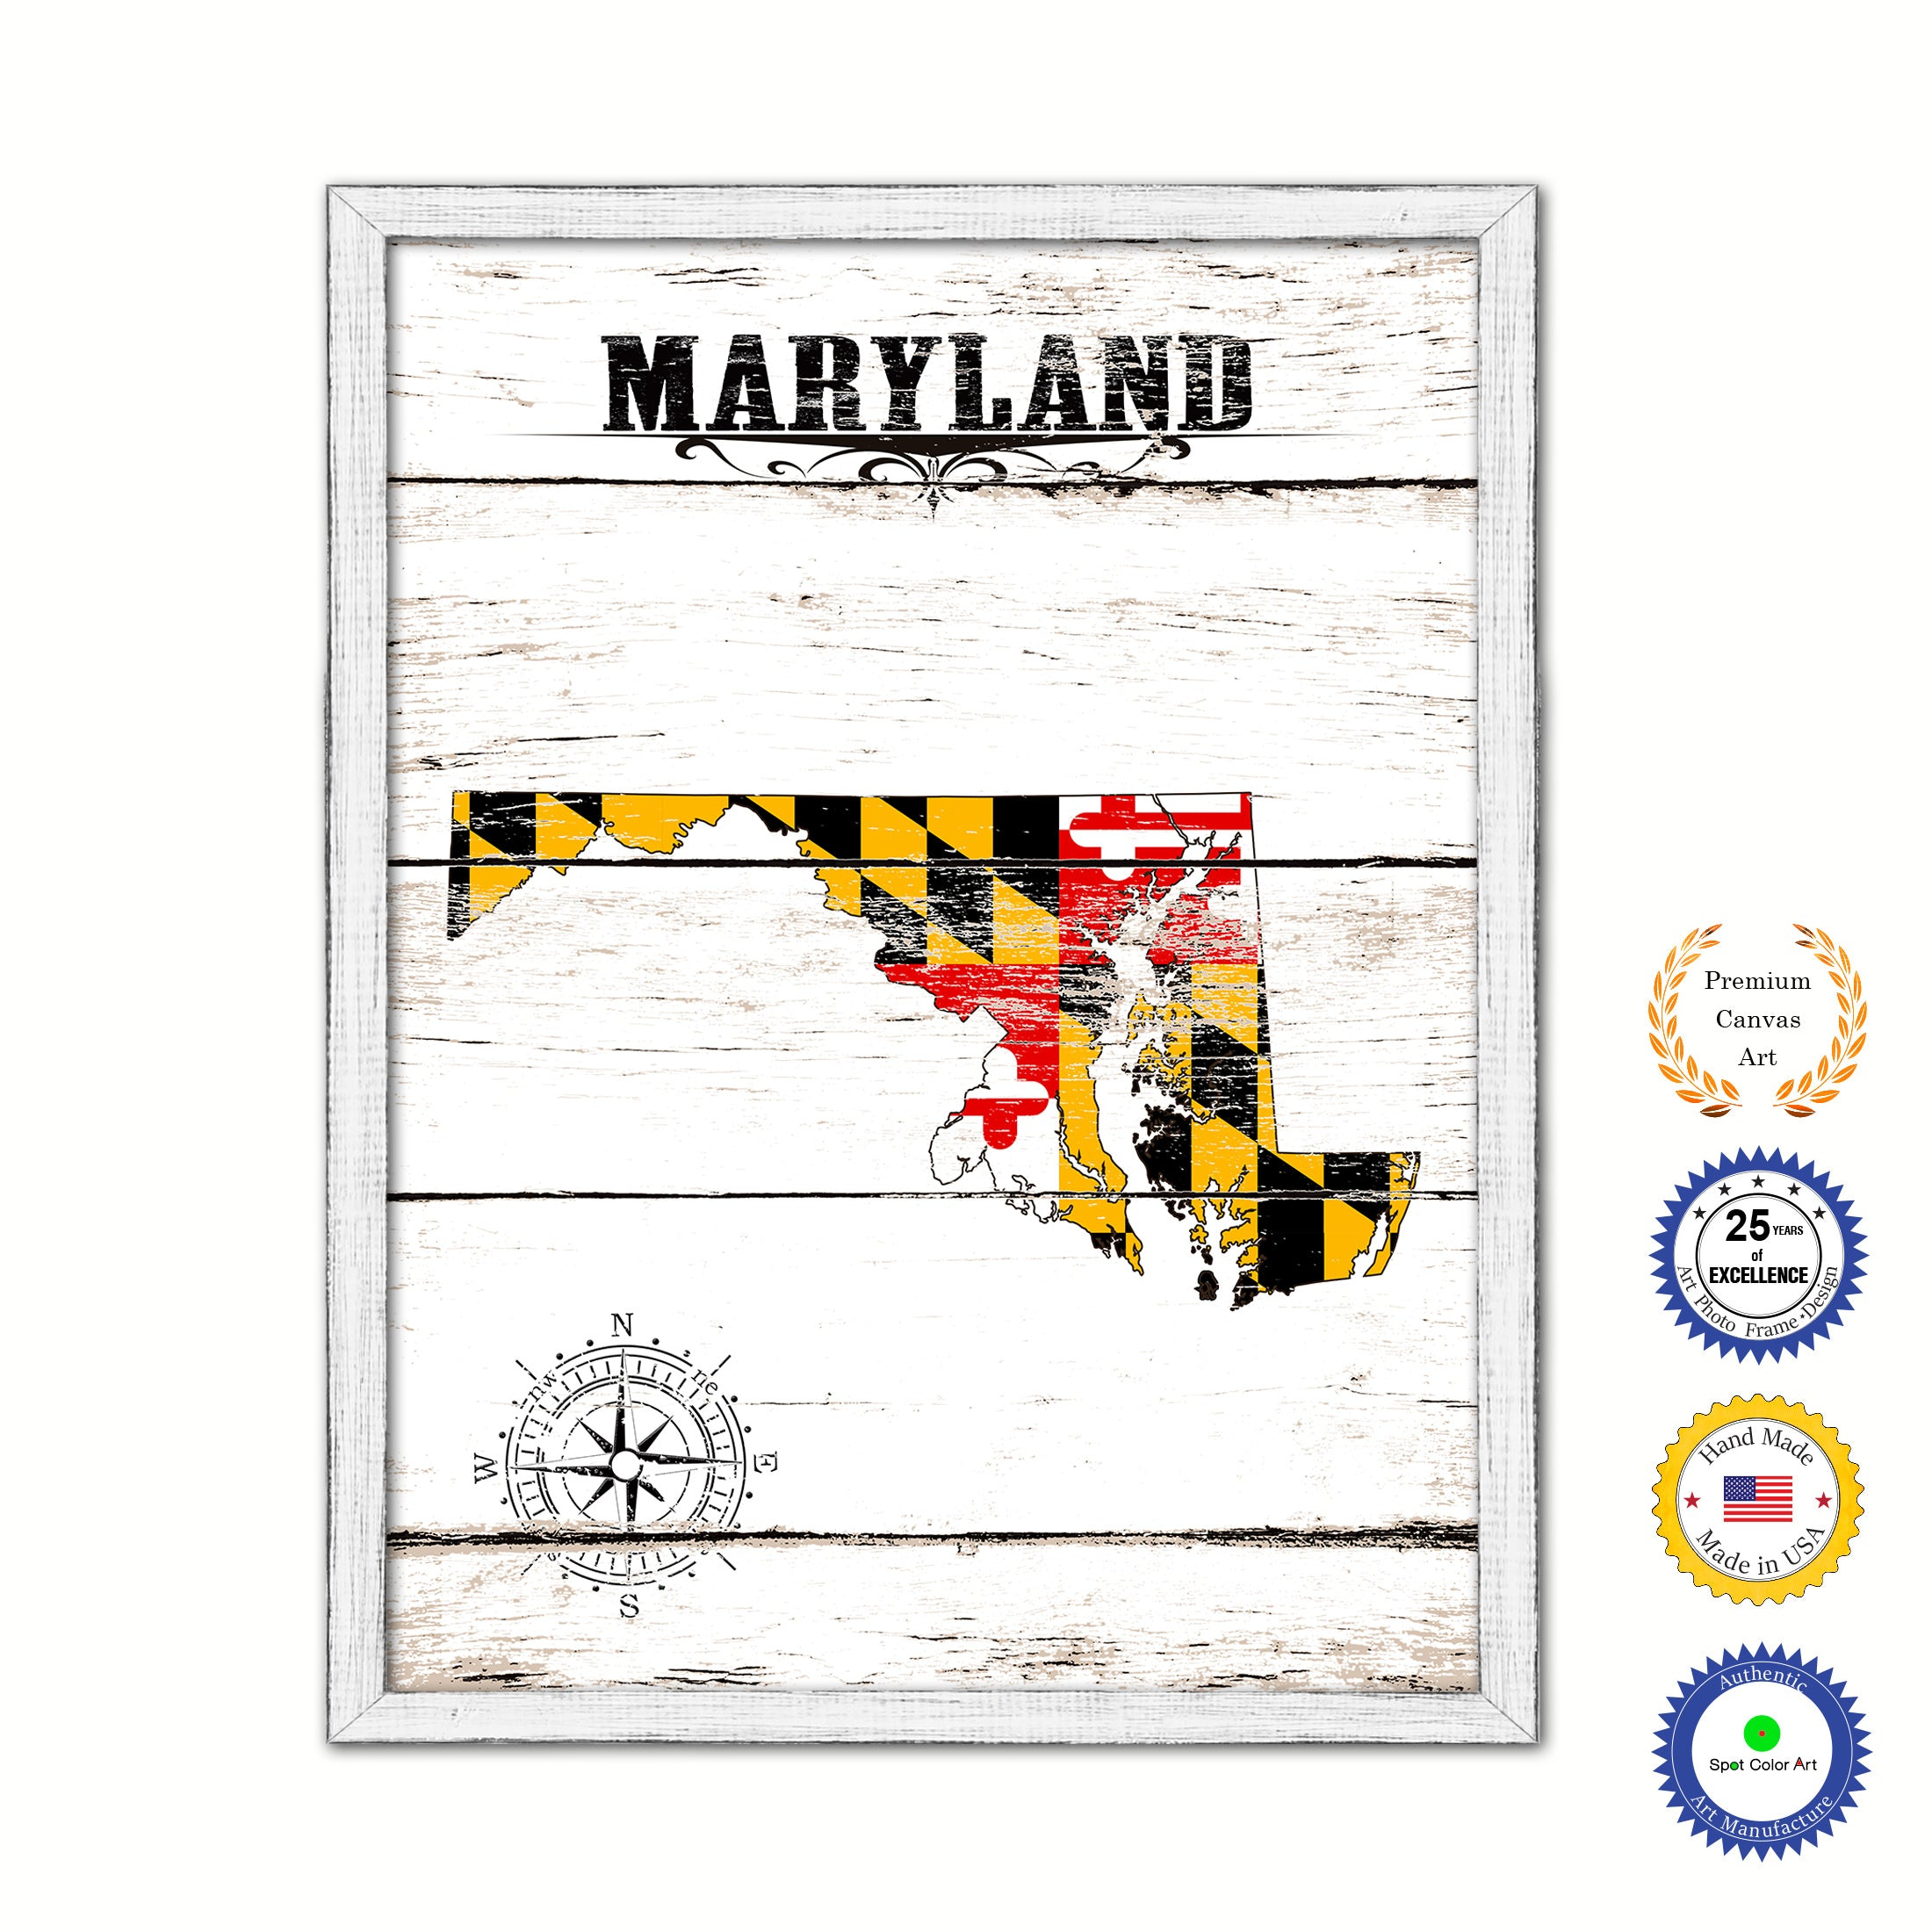 Maryland State Shabby Chic Flag Home Decor Office Wall Art Collection Bedroom Livingroom Decoration Gift Ideas SpotColorArt